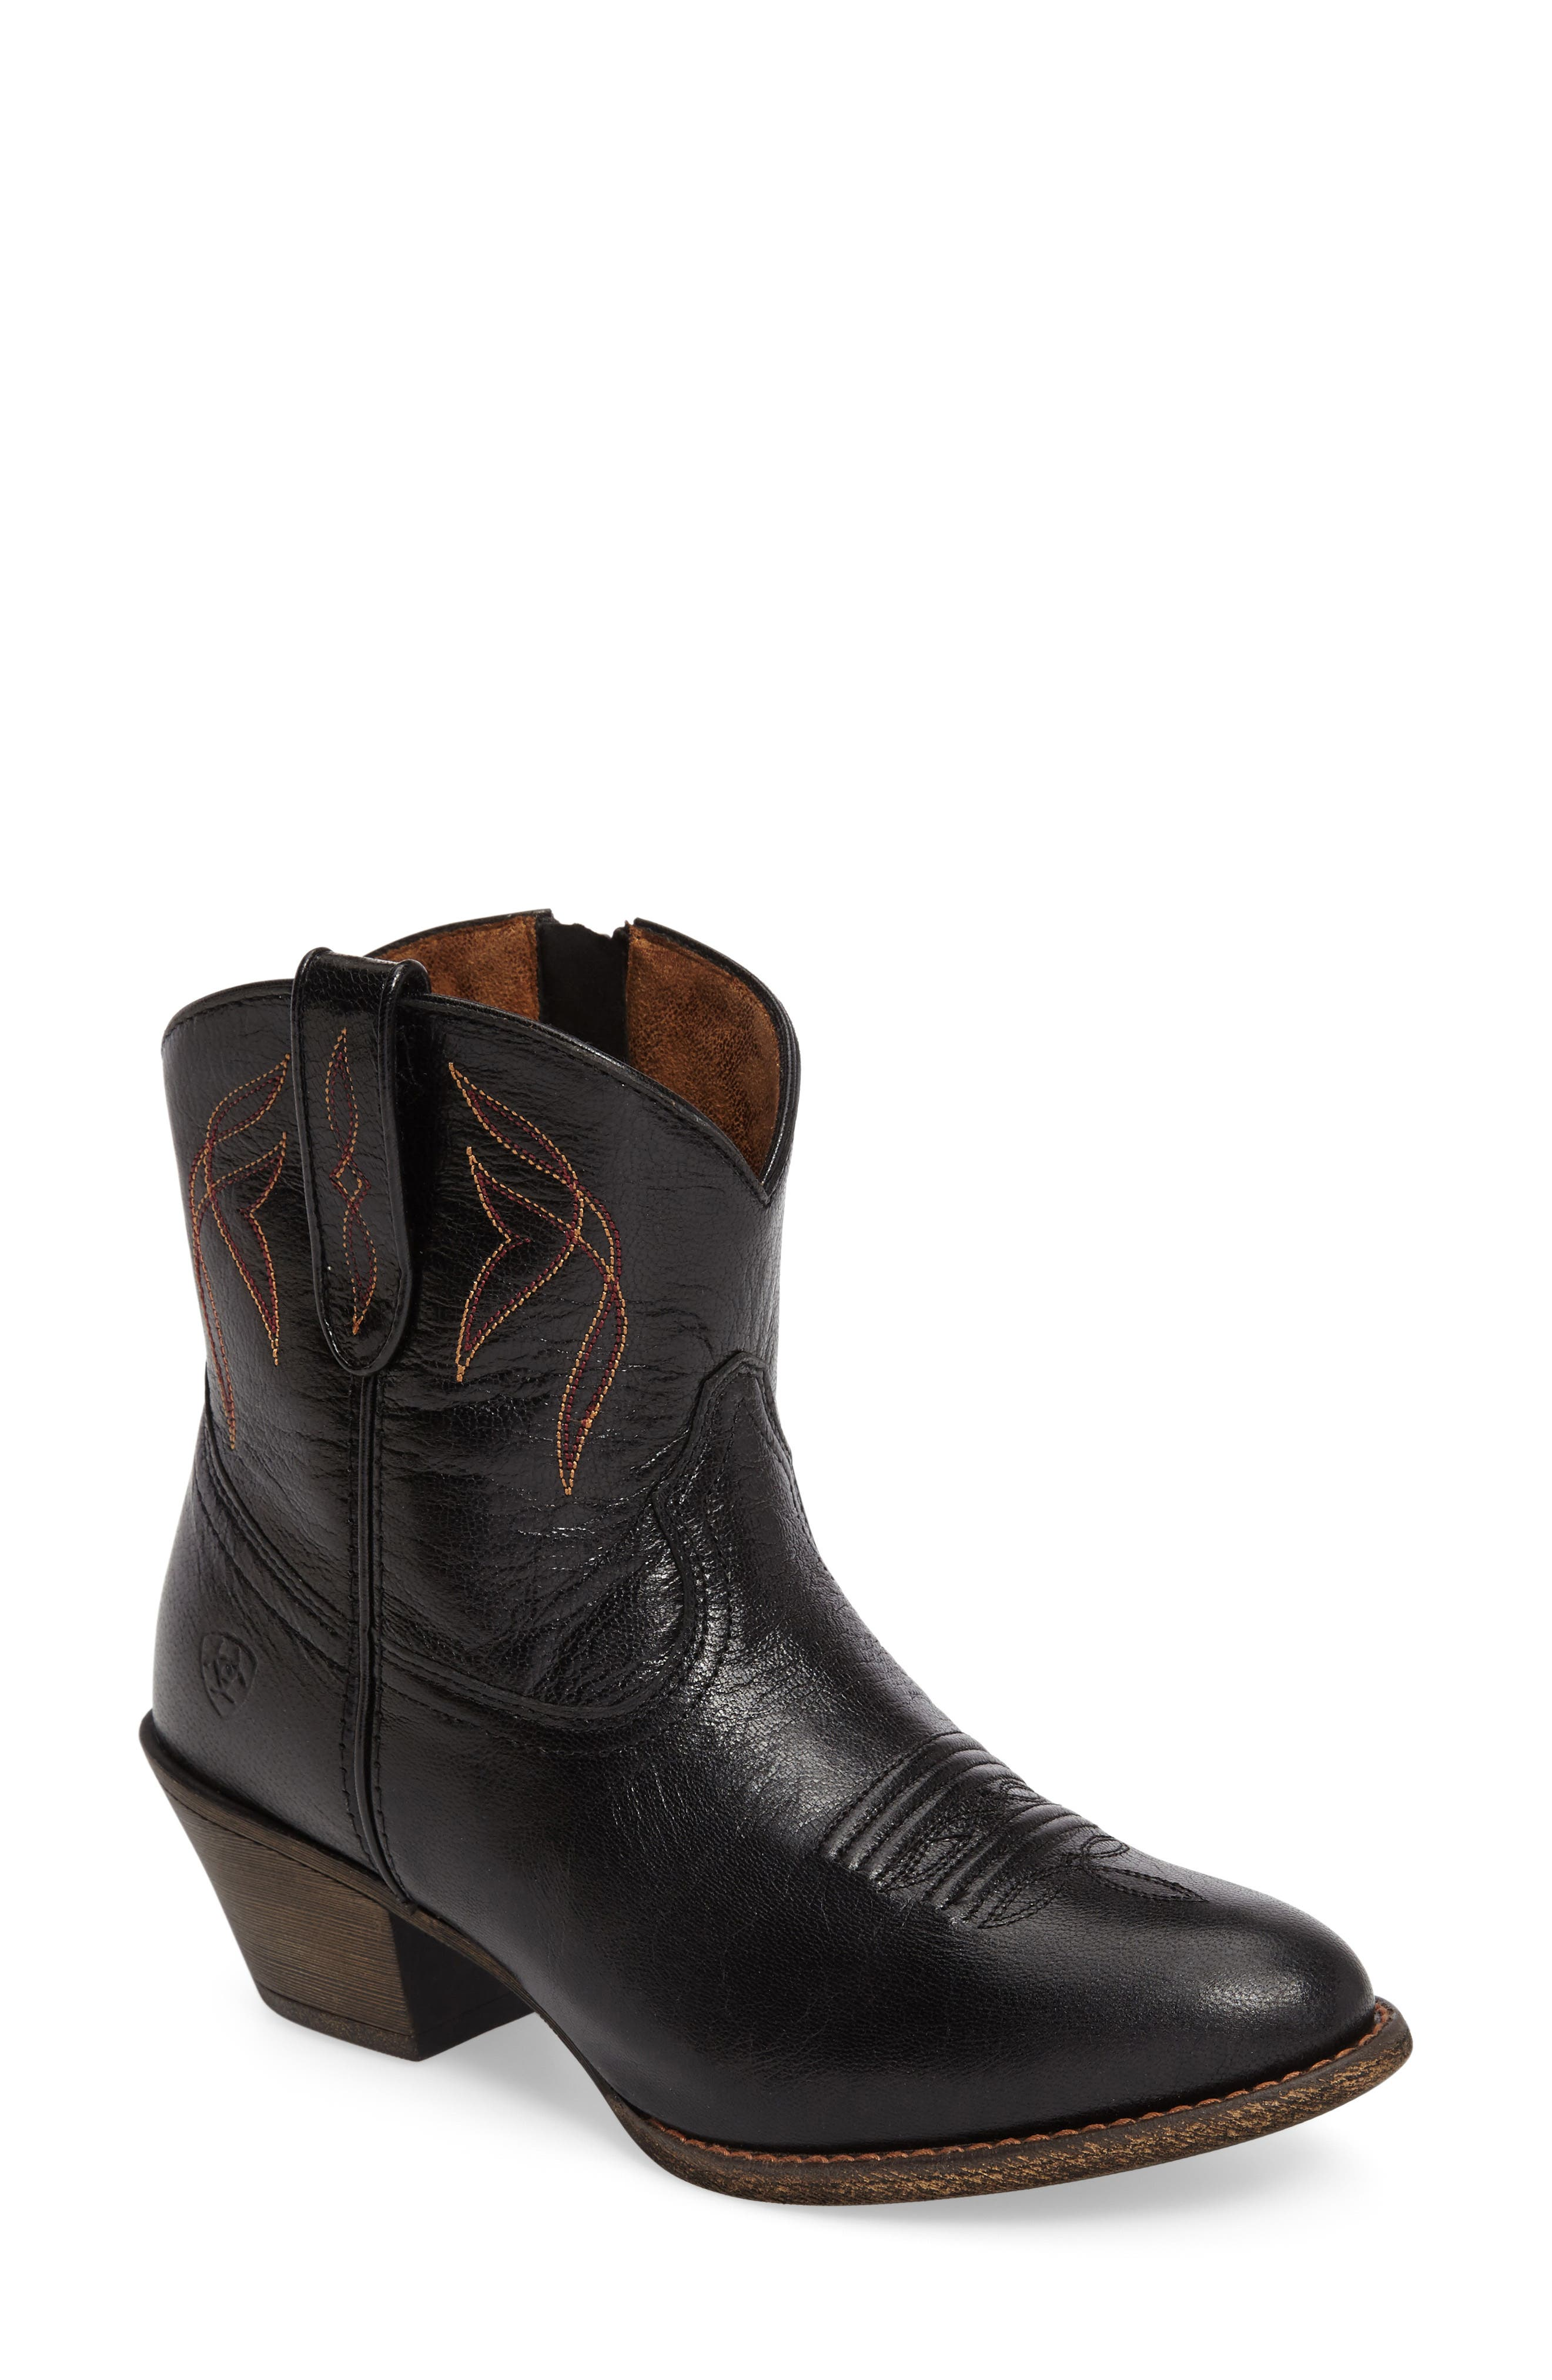 Darlin Short Western Boot,                         Main,                         color, OLD BLACK LEATHER